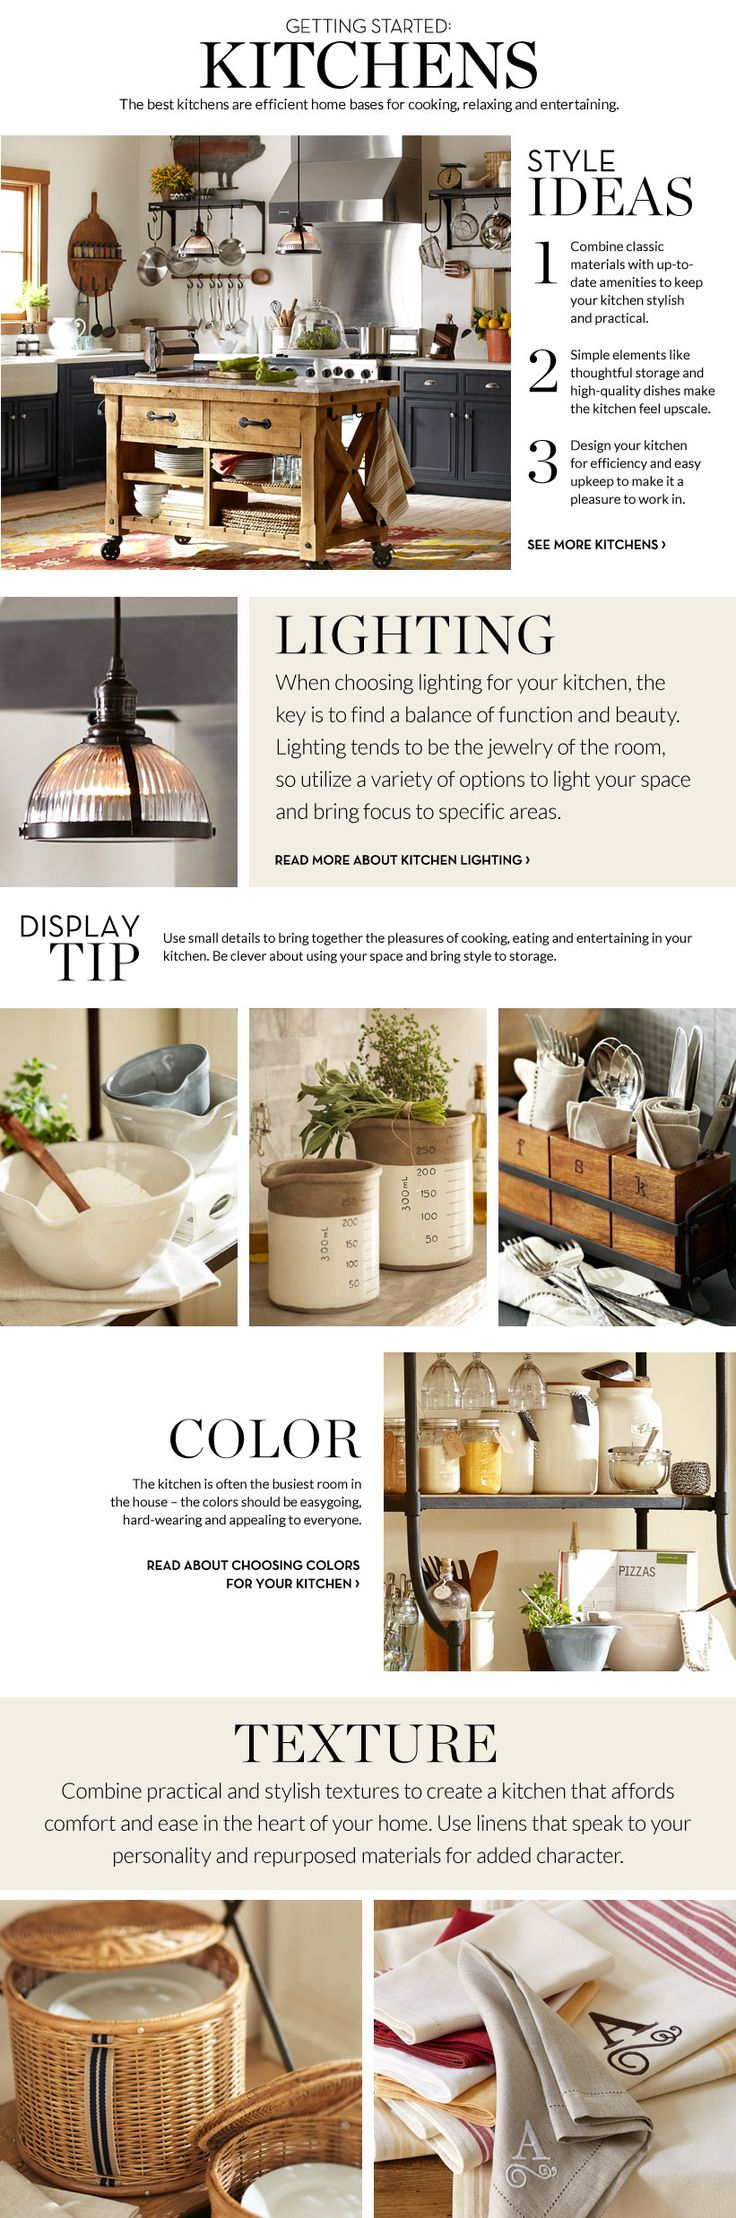 Best 25+ Pottery Barn Decorating Ideas On Pinterest | Pottery Barn Colors, Pottery  Barn Rug And Pottery Barn Style